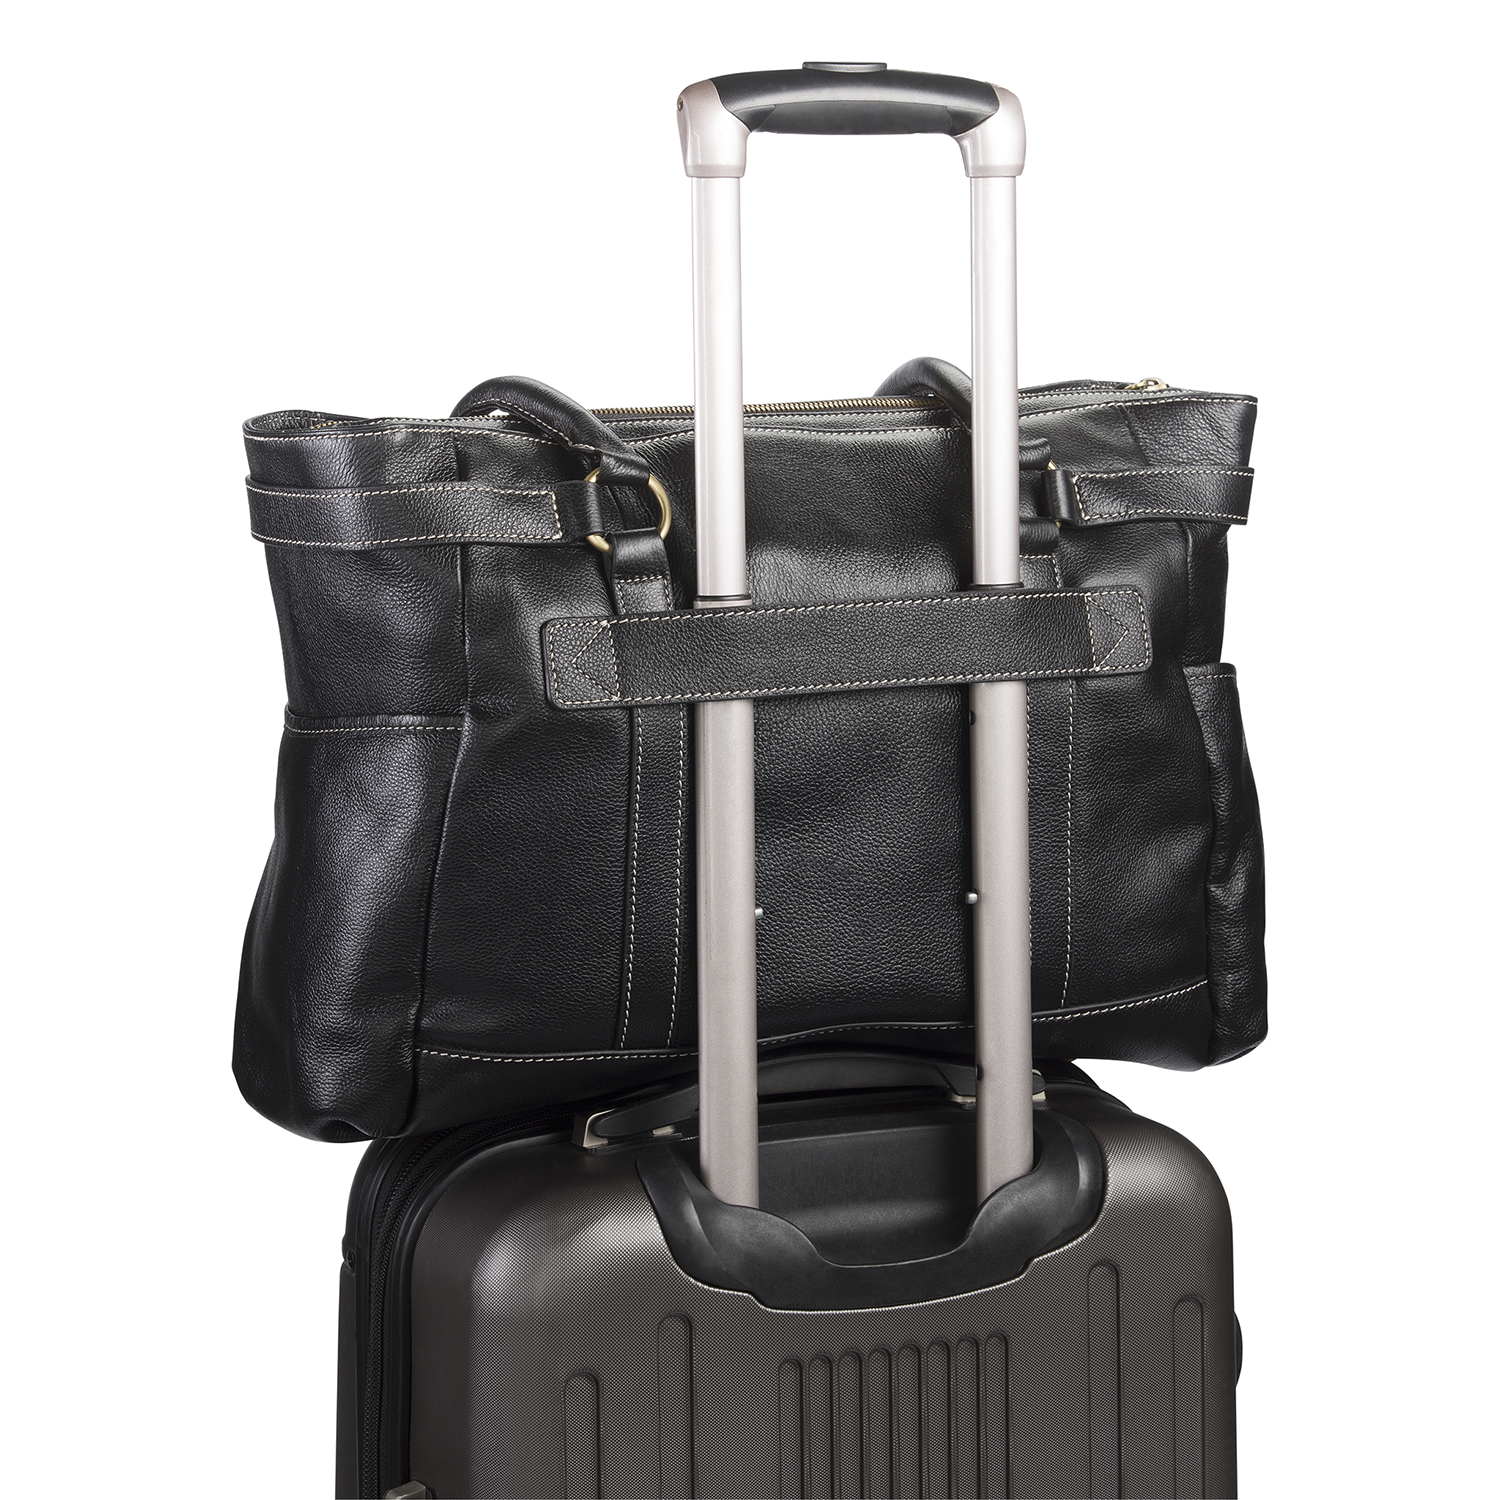 Remote work travel bags that work great with your luggage.